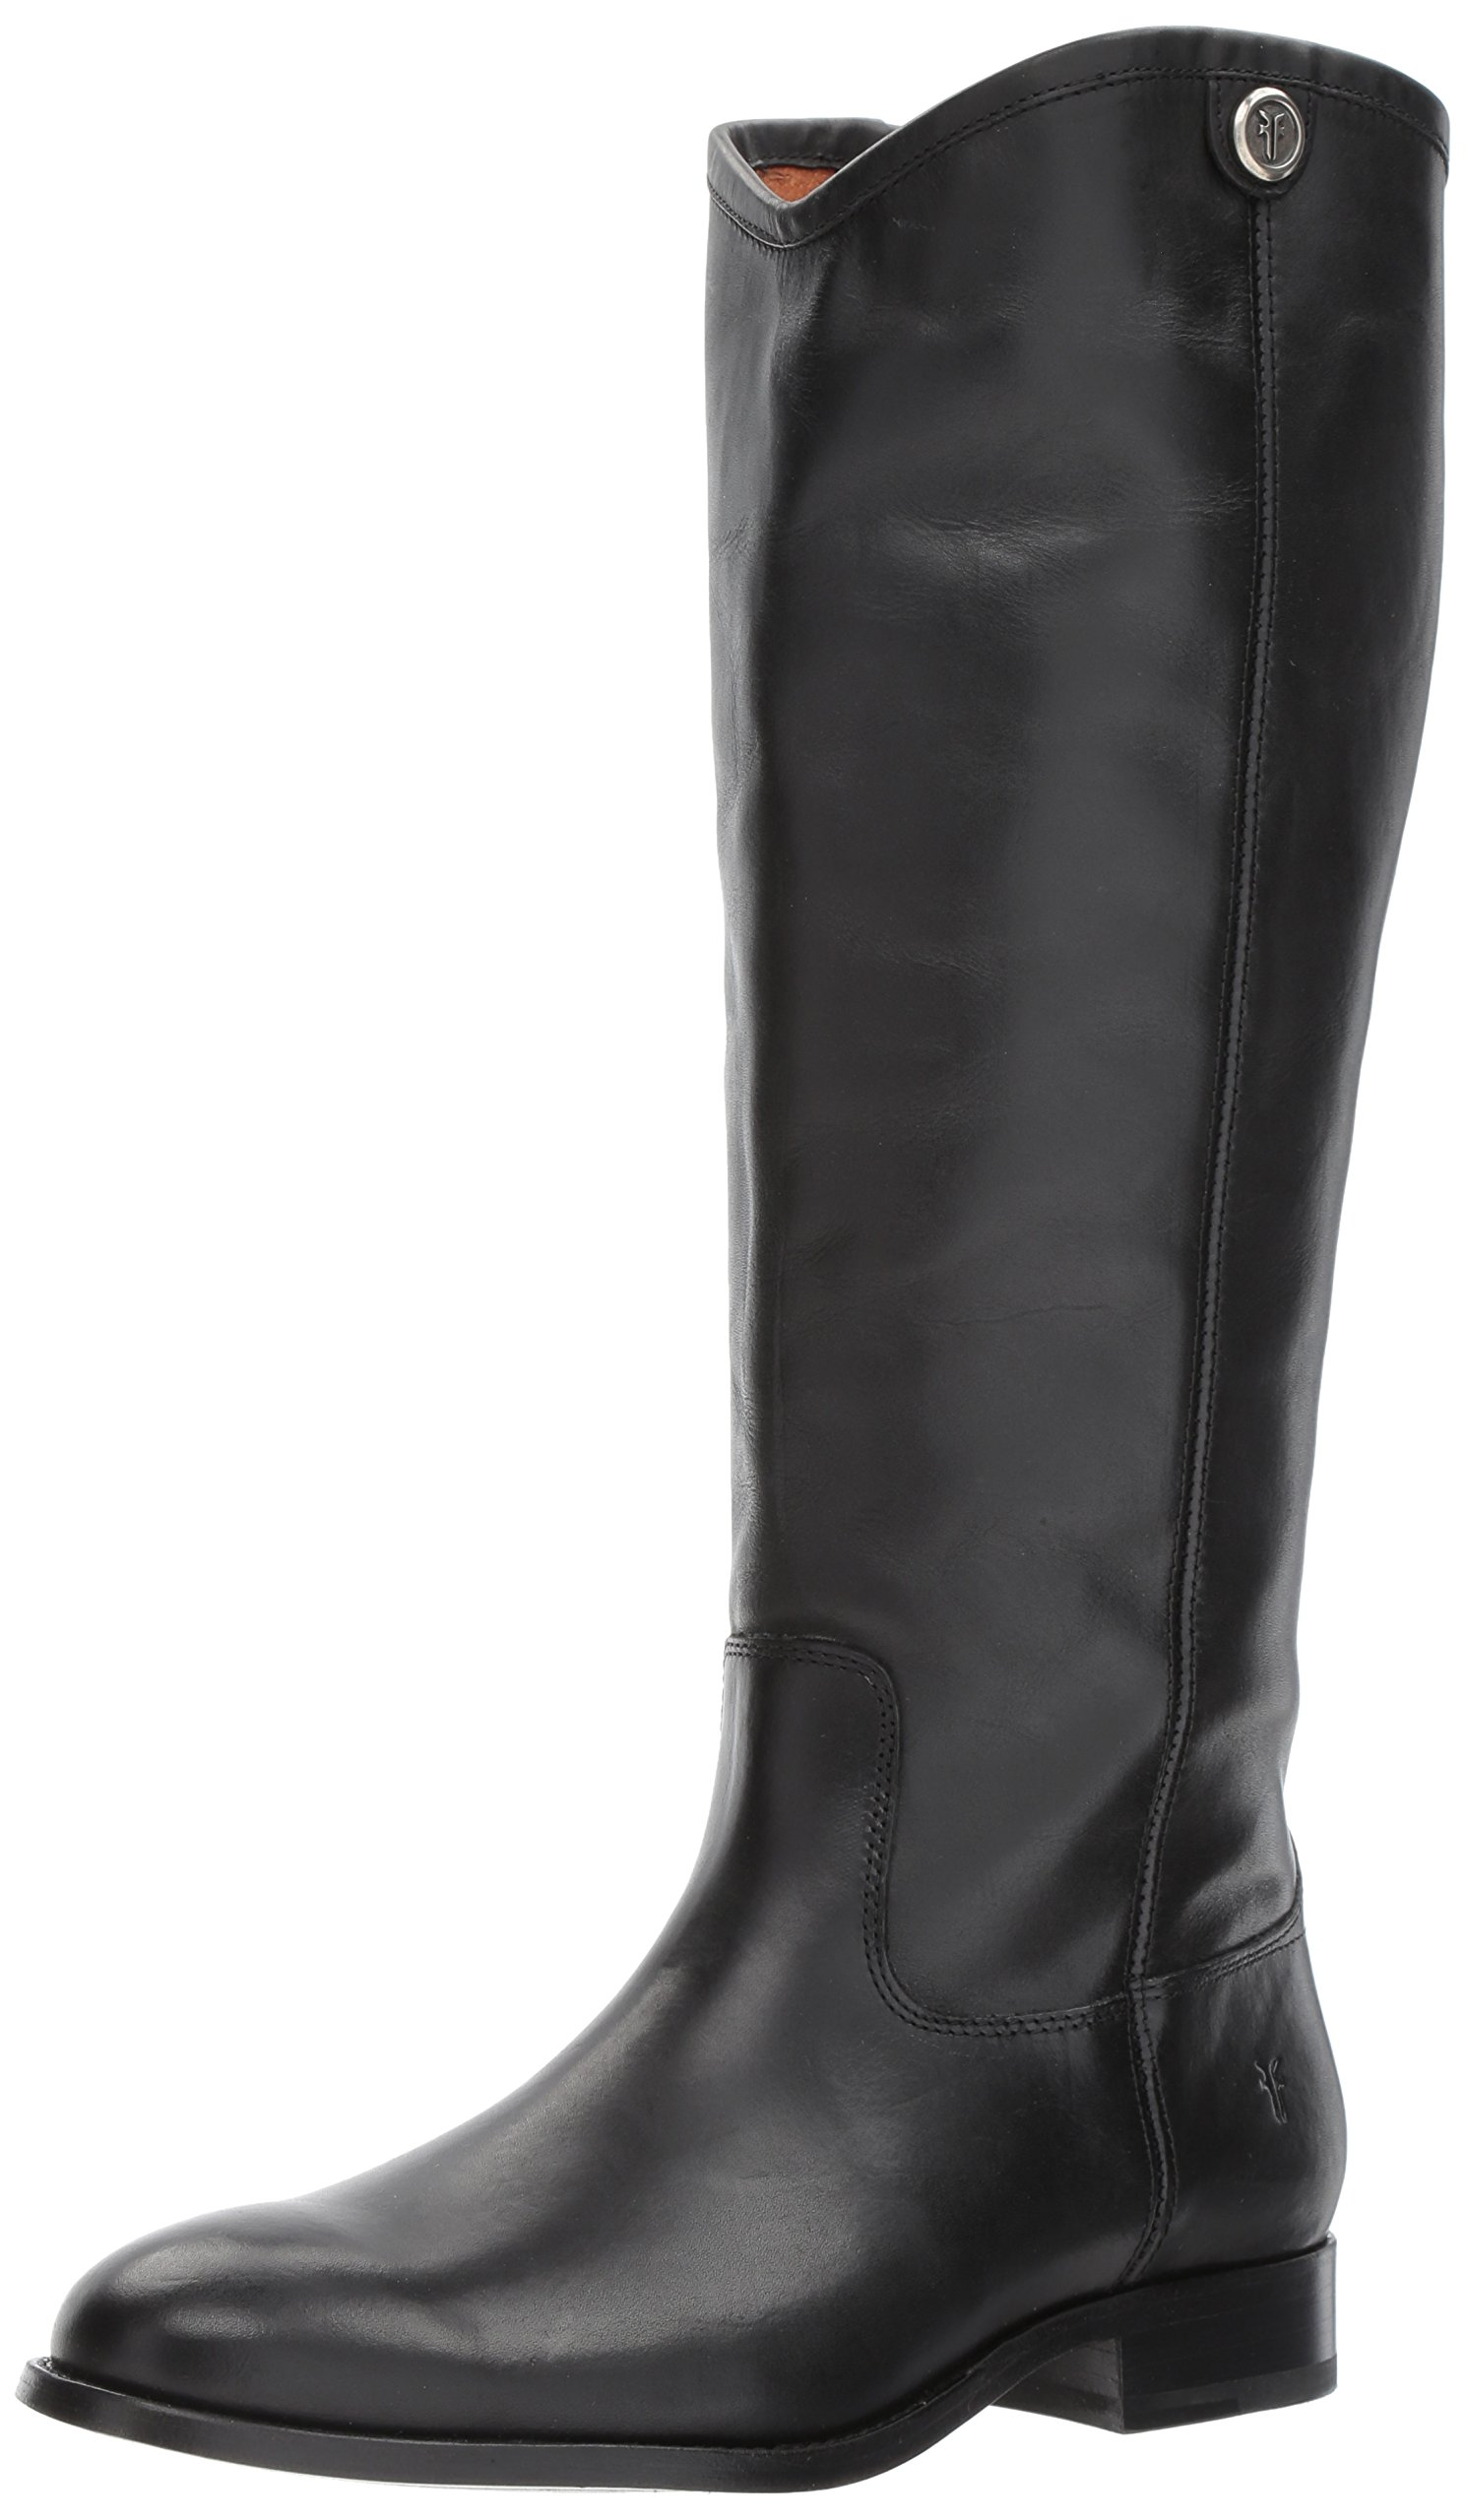 FRYE Women's Melissa Button 2 Extended Calf Riding Boot, Black Extended Calf, 8 M US